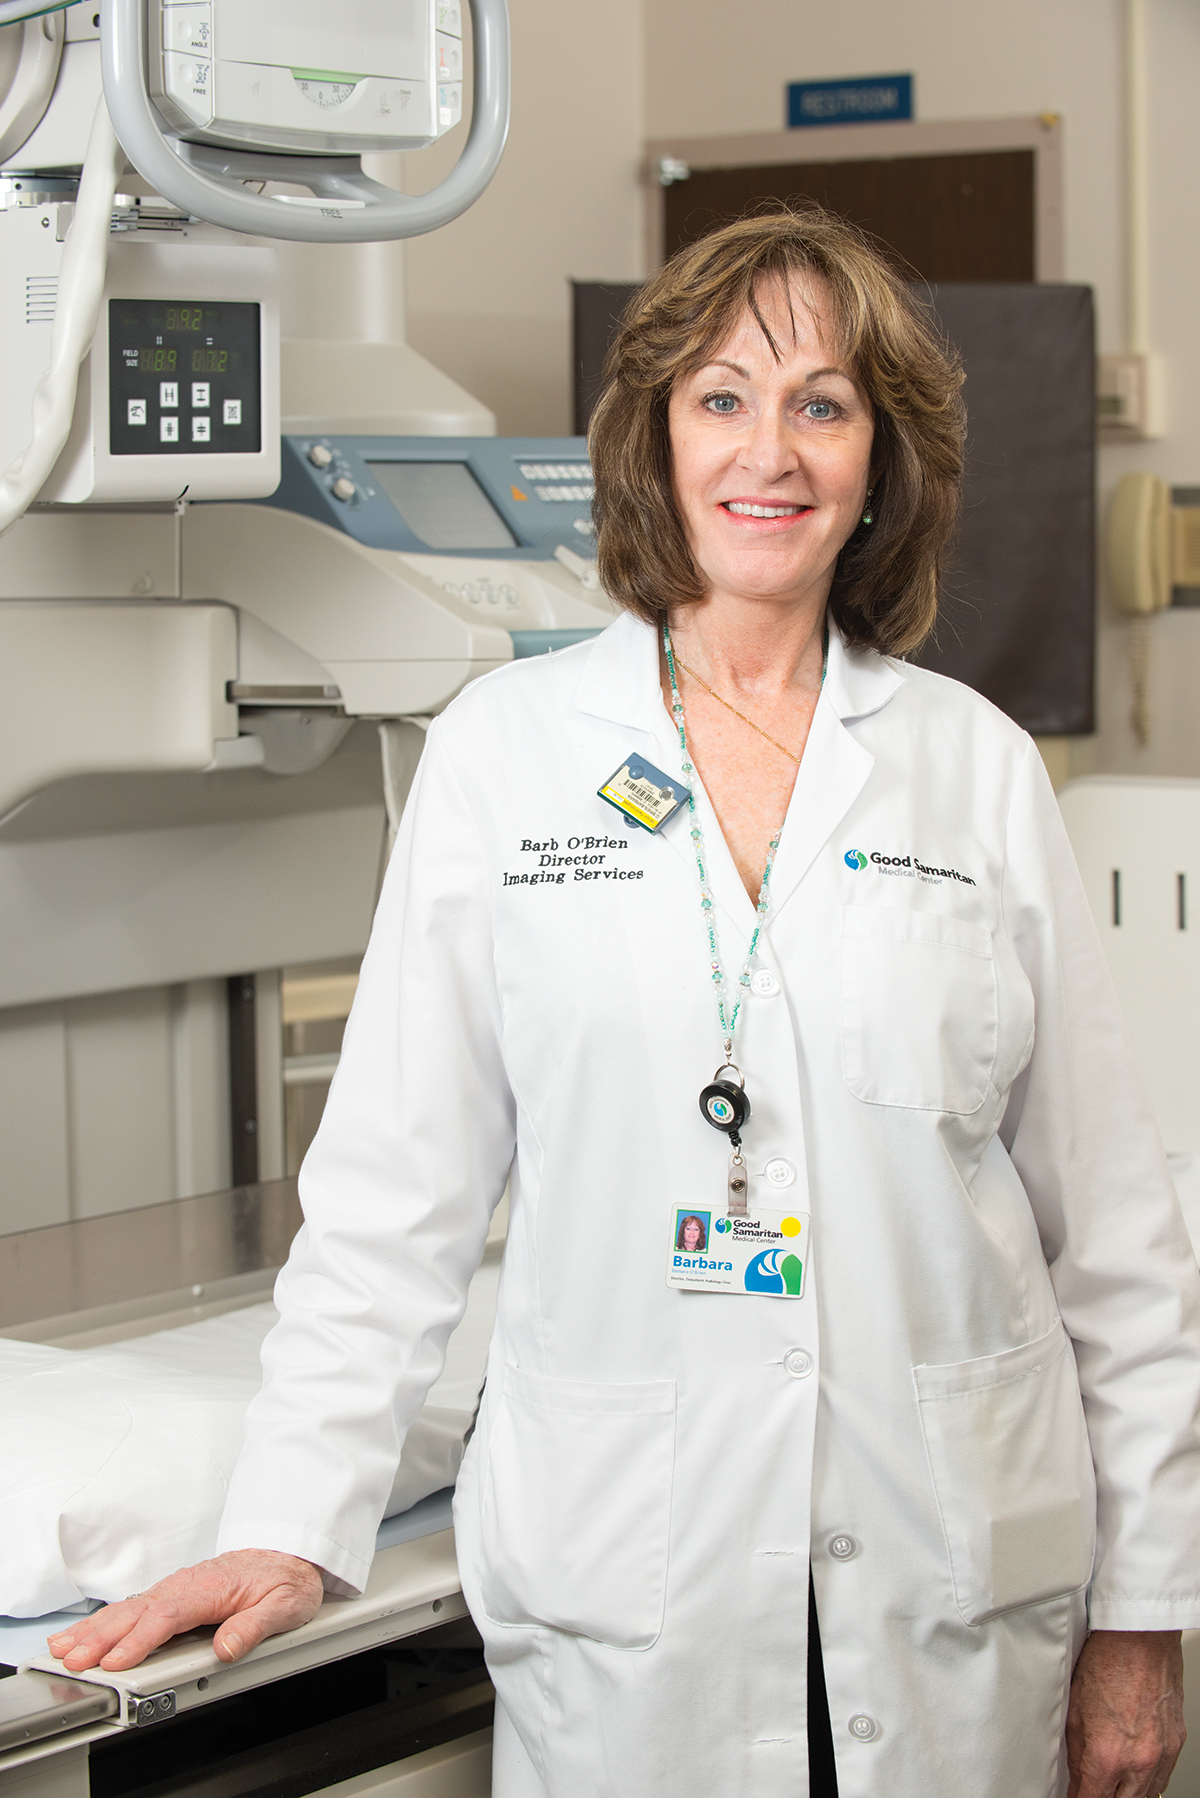 Barbara O'Brien, director of imaging services at Good Samaritan Hospital